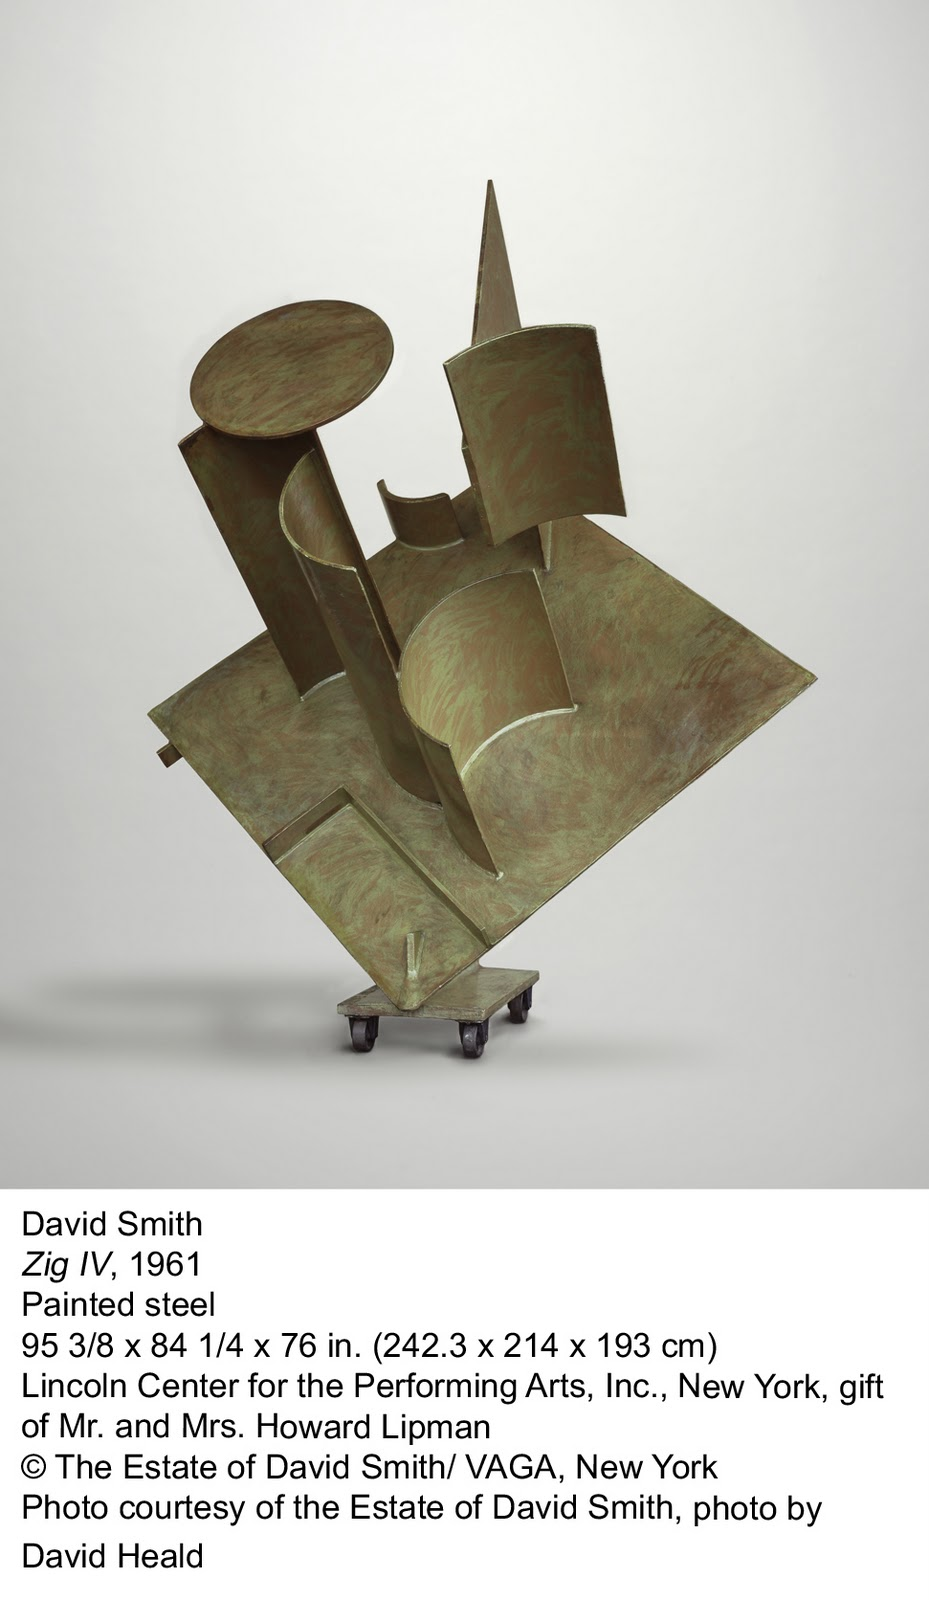 an exhibition critique the lacma cube and anarchy Art review: 'david smith: cubes and anarchy' at los angeles county museum of  art  a certain unexpected timeliness attends lacma's emphasis on this  personal  meaning to the exhibition's subtitle, cubes and anarchy.